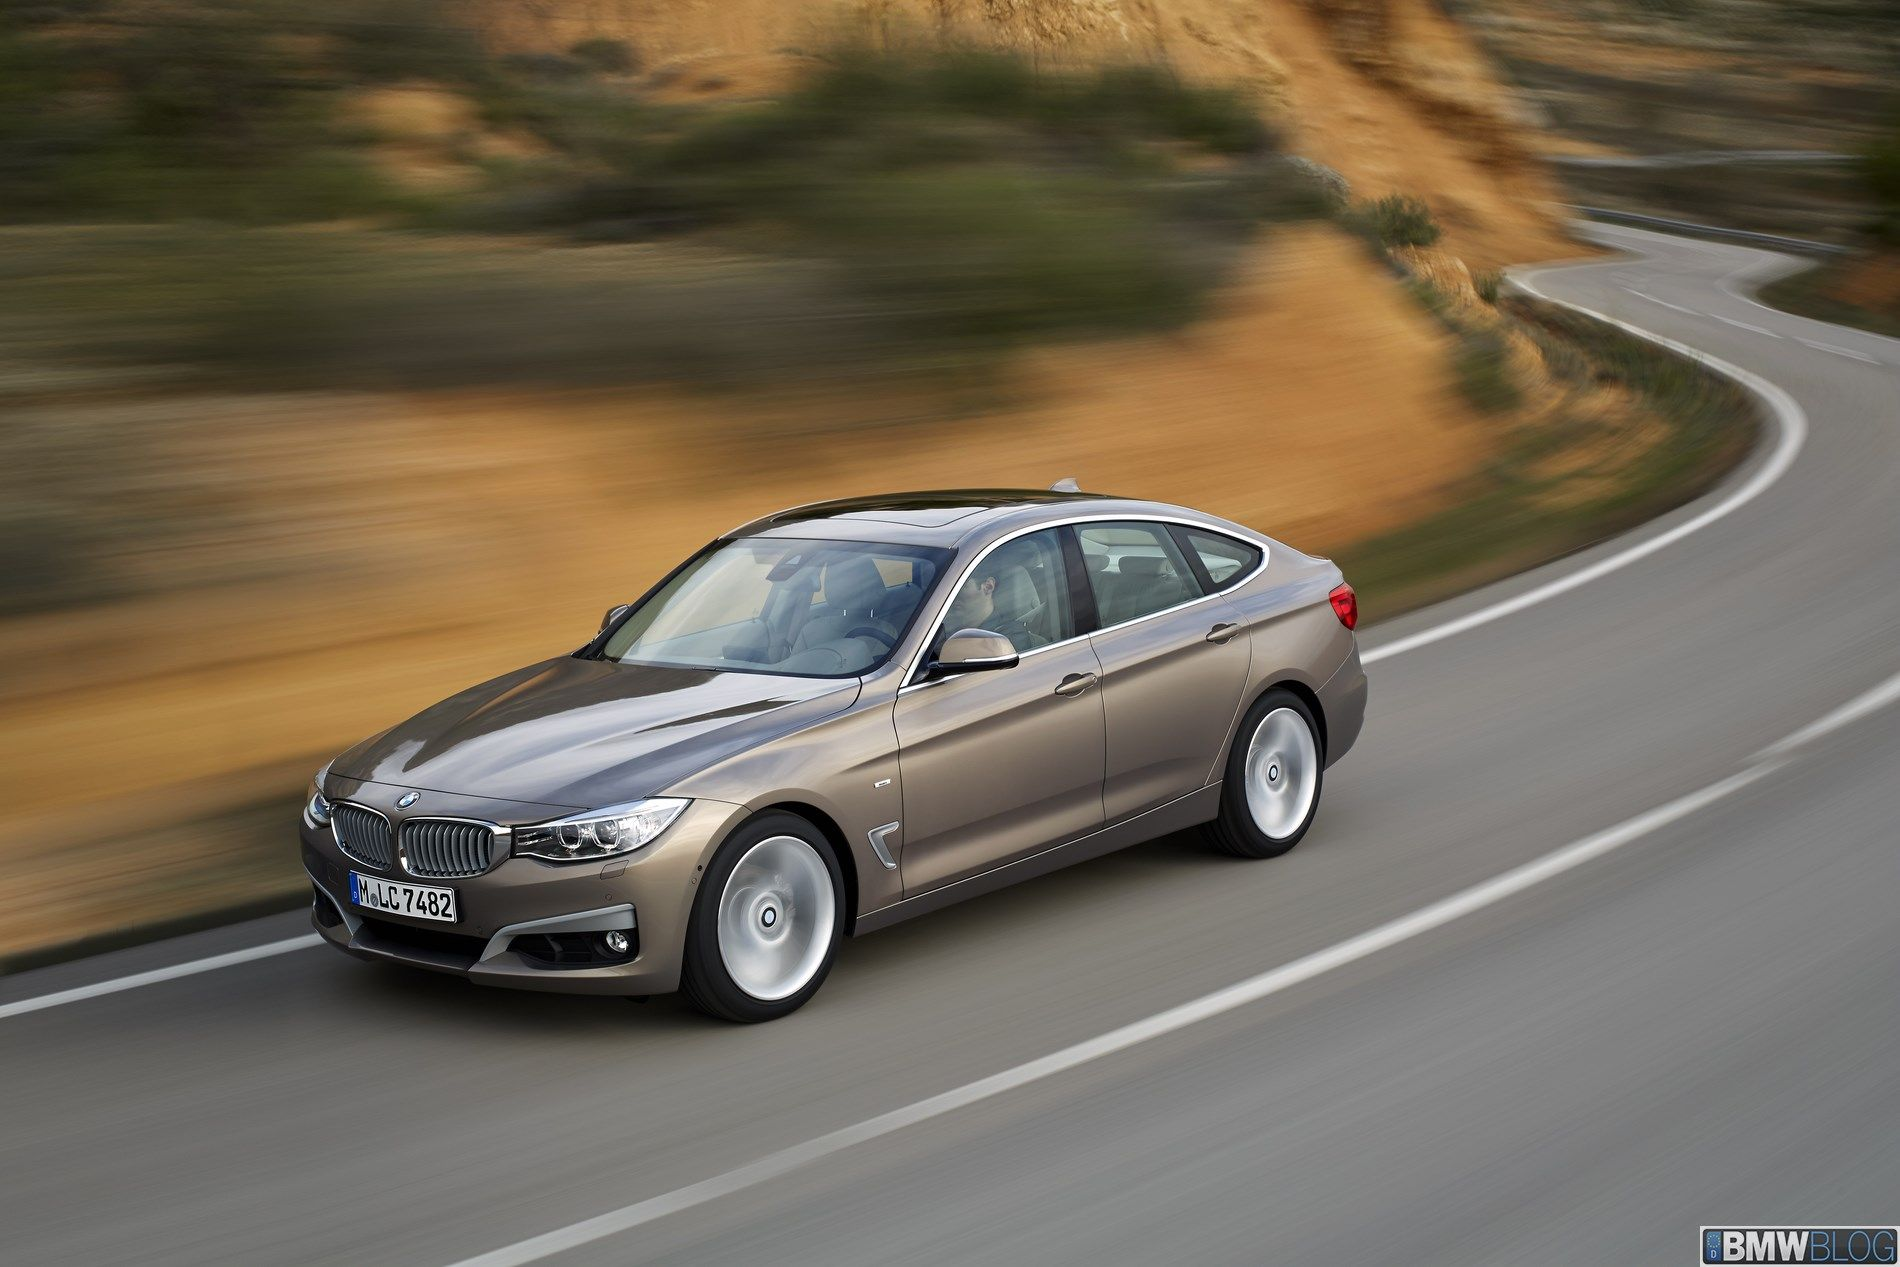 The new bmw 3 series gran turismo adds an innovative new concept to the successful bmw 3 series line up